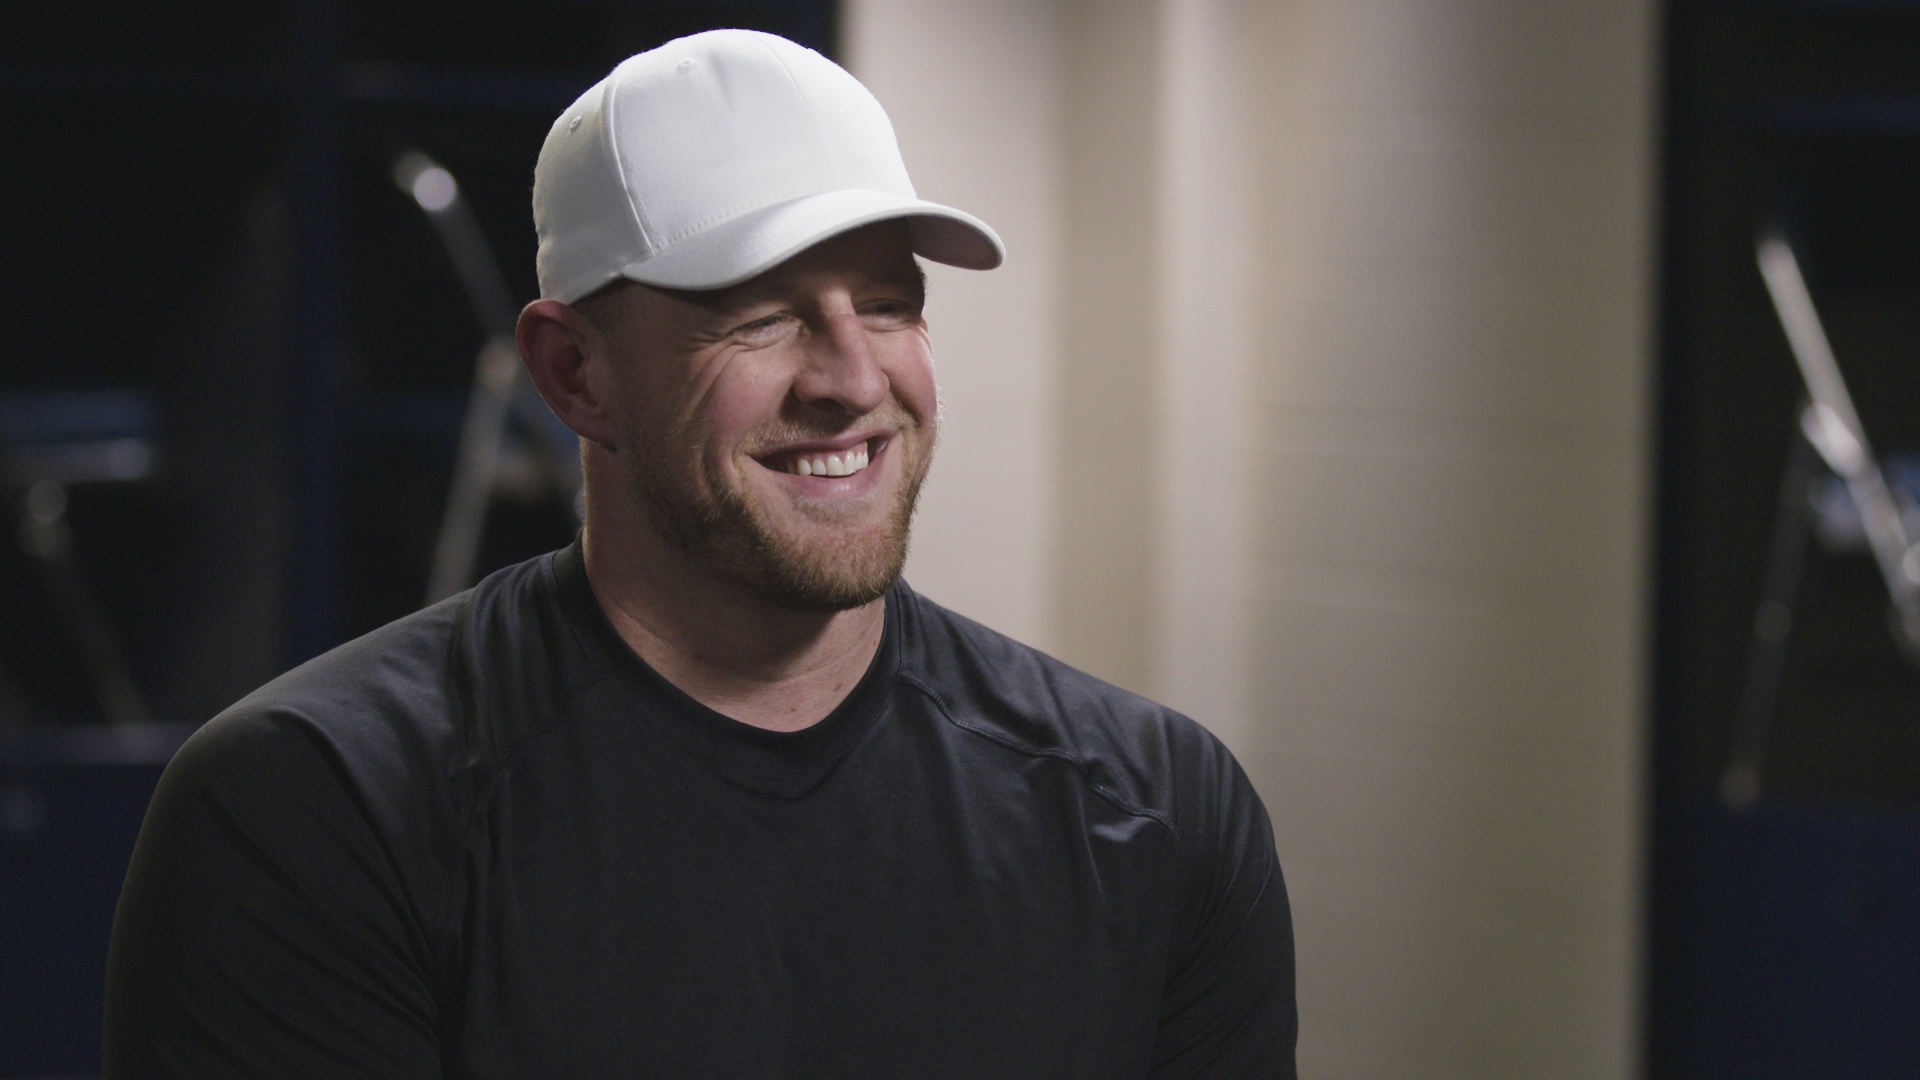 KDC GTT 2760.00 00 00 19.Still003 Go To Team Texas Crew | NBC Sports JJ Watt Interview